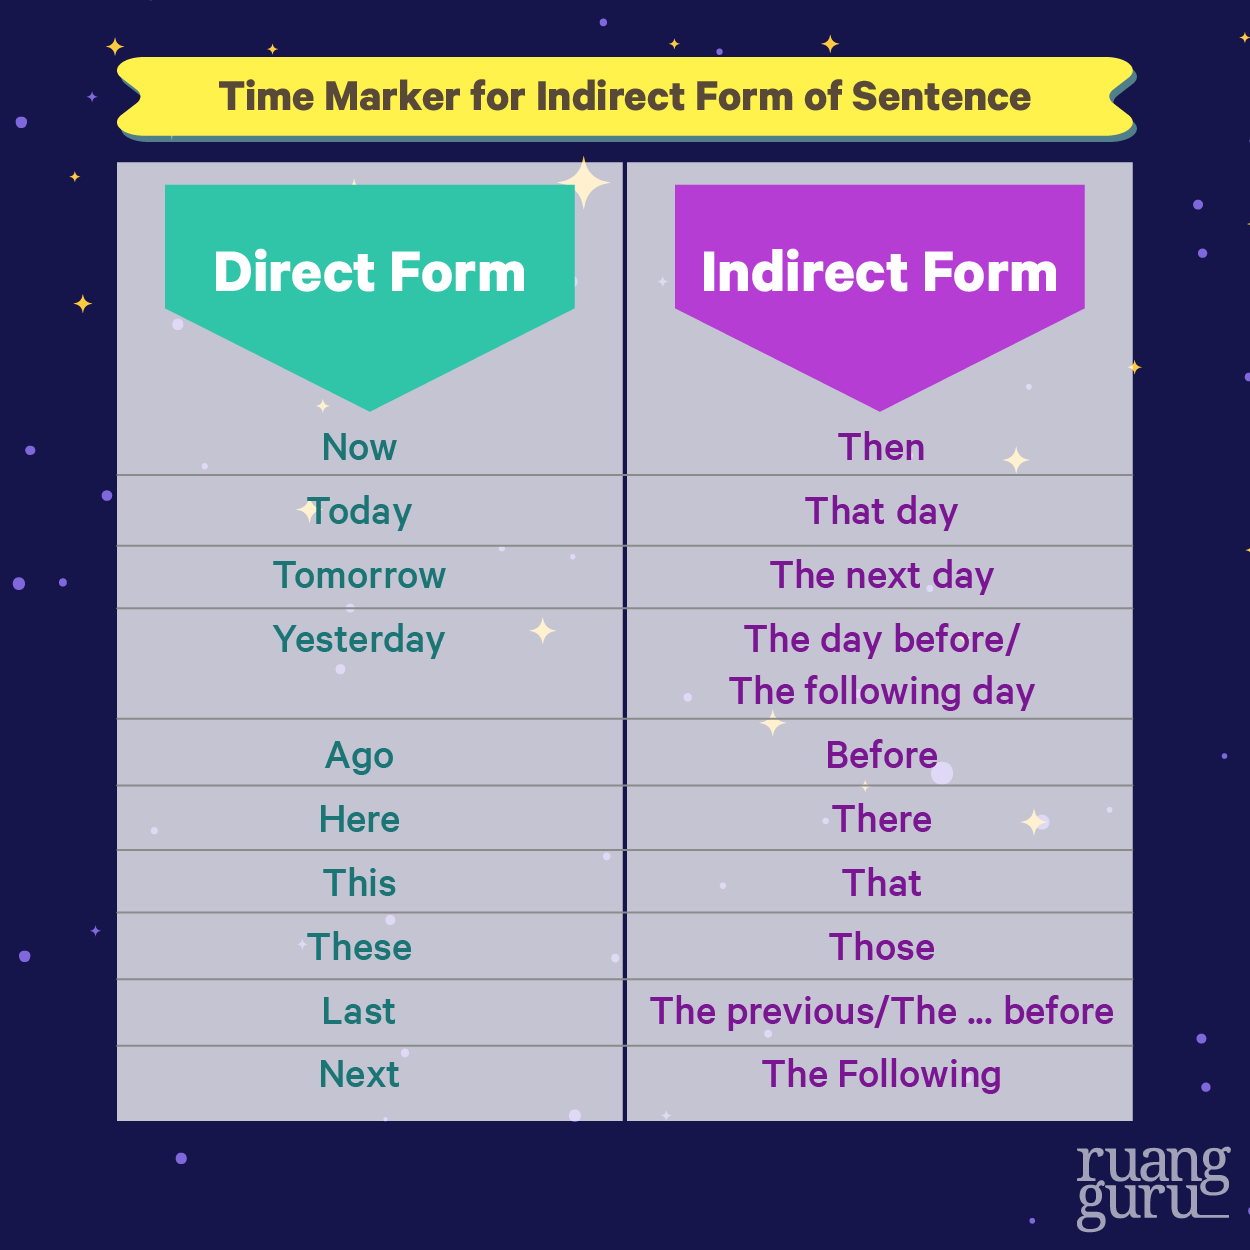 Indirect Form of Sentence